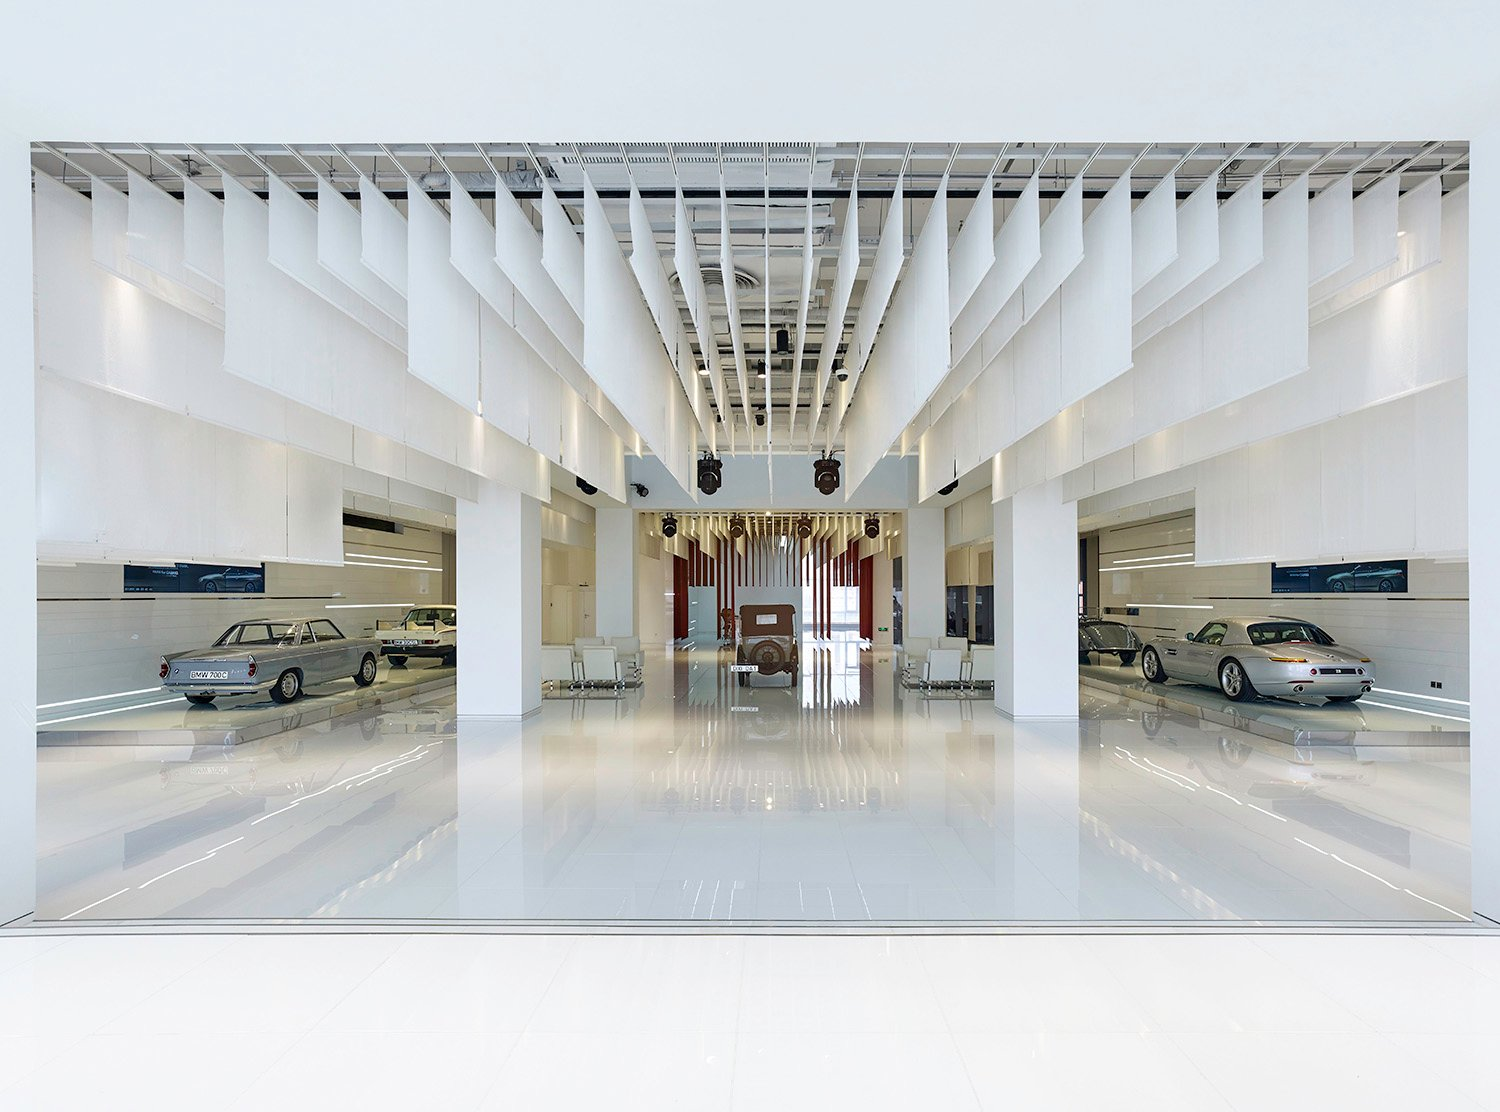 White banners hang from the open ceiling, softening the space and reducing the height to a more intimate scale  YANG Chao Ying